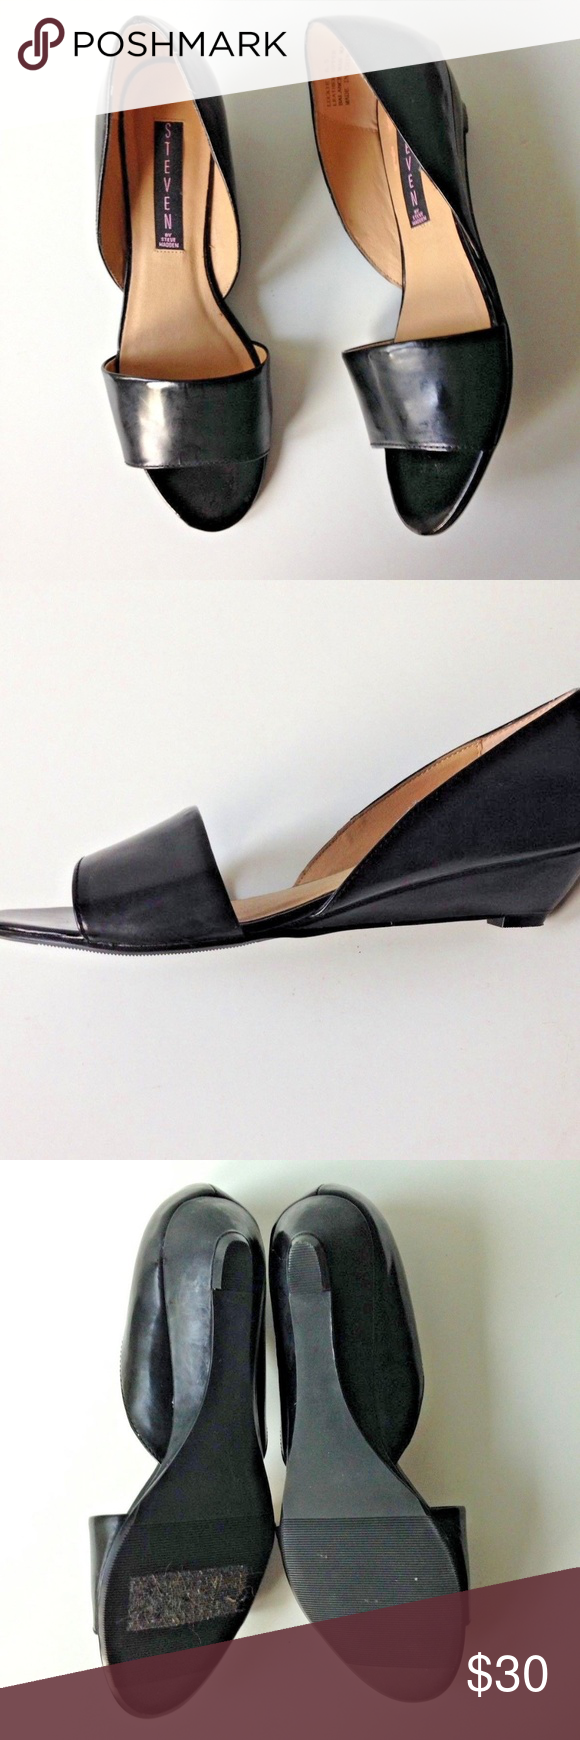 b863bb1b30b STEVEN By Steve Madden Luckie Black Patent Wedge • Very trendy and Comfy  Wedges by STEVEN BY STEVE MADDEN • Sz 6.5 • Color   Black • Heel Height  Approx ...